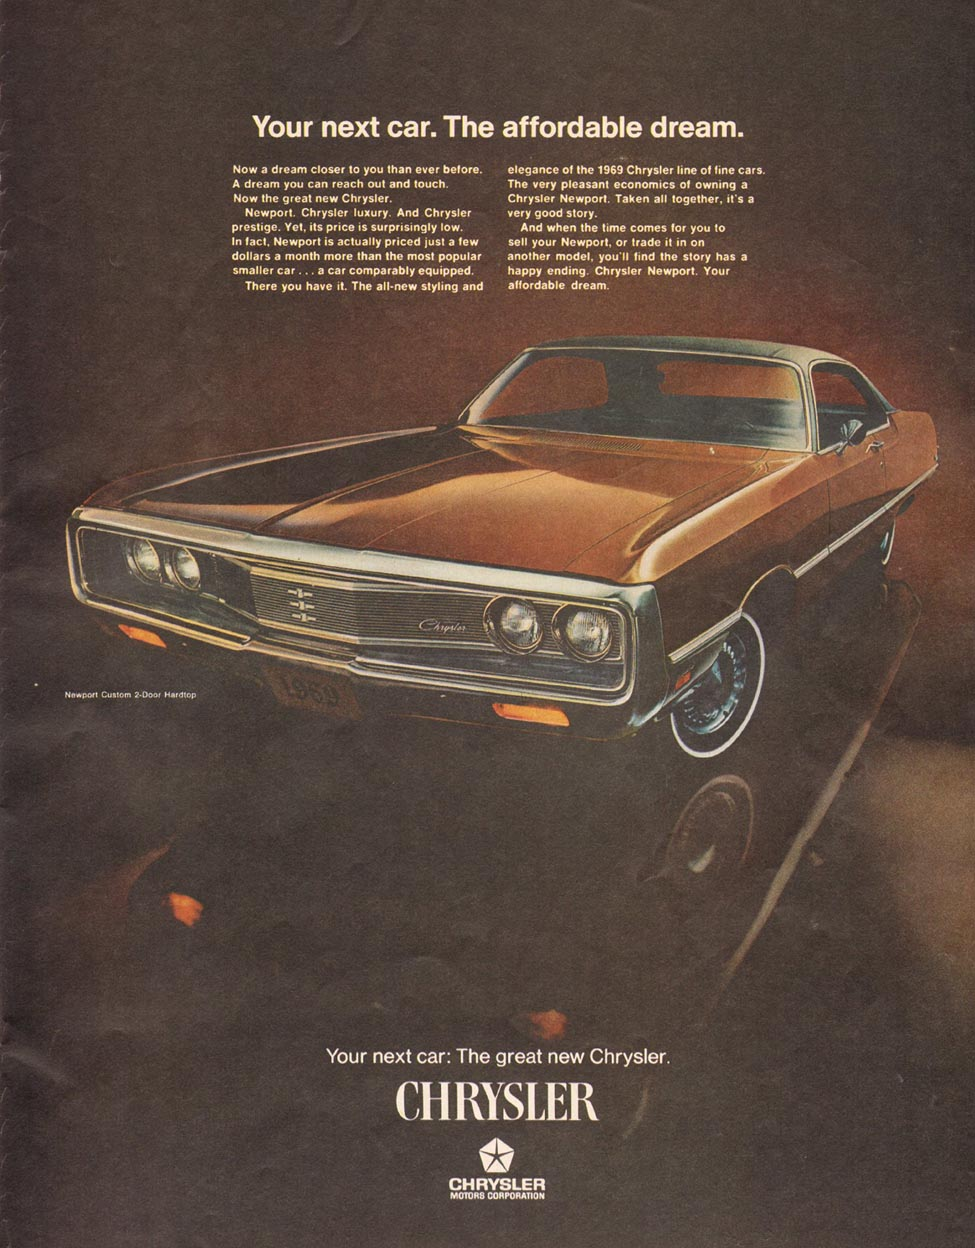 CHRYSLER AUTOMOBILES SATURDAY EVENING POST 01/25/1969 p. 57